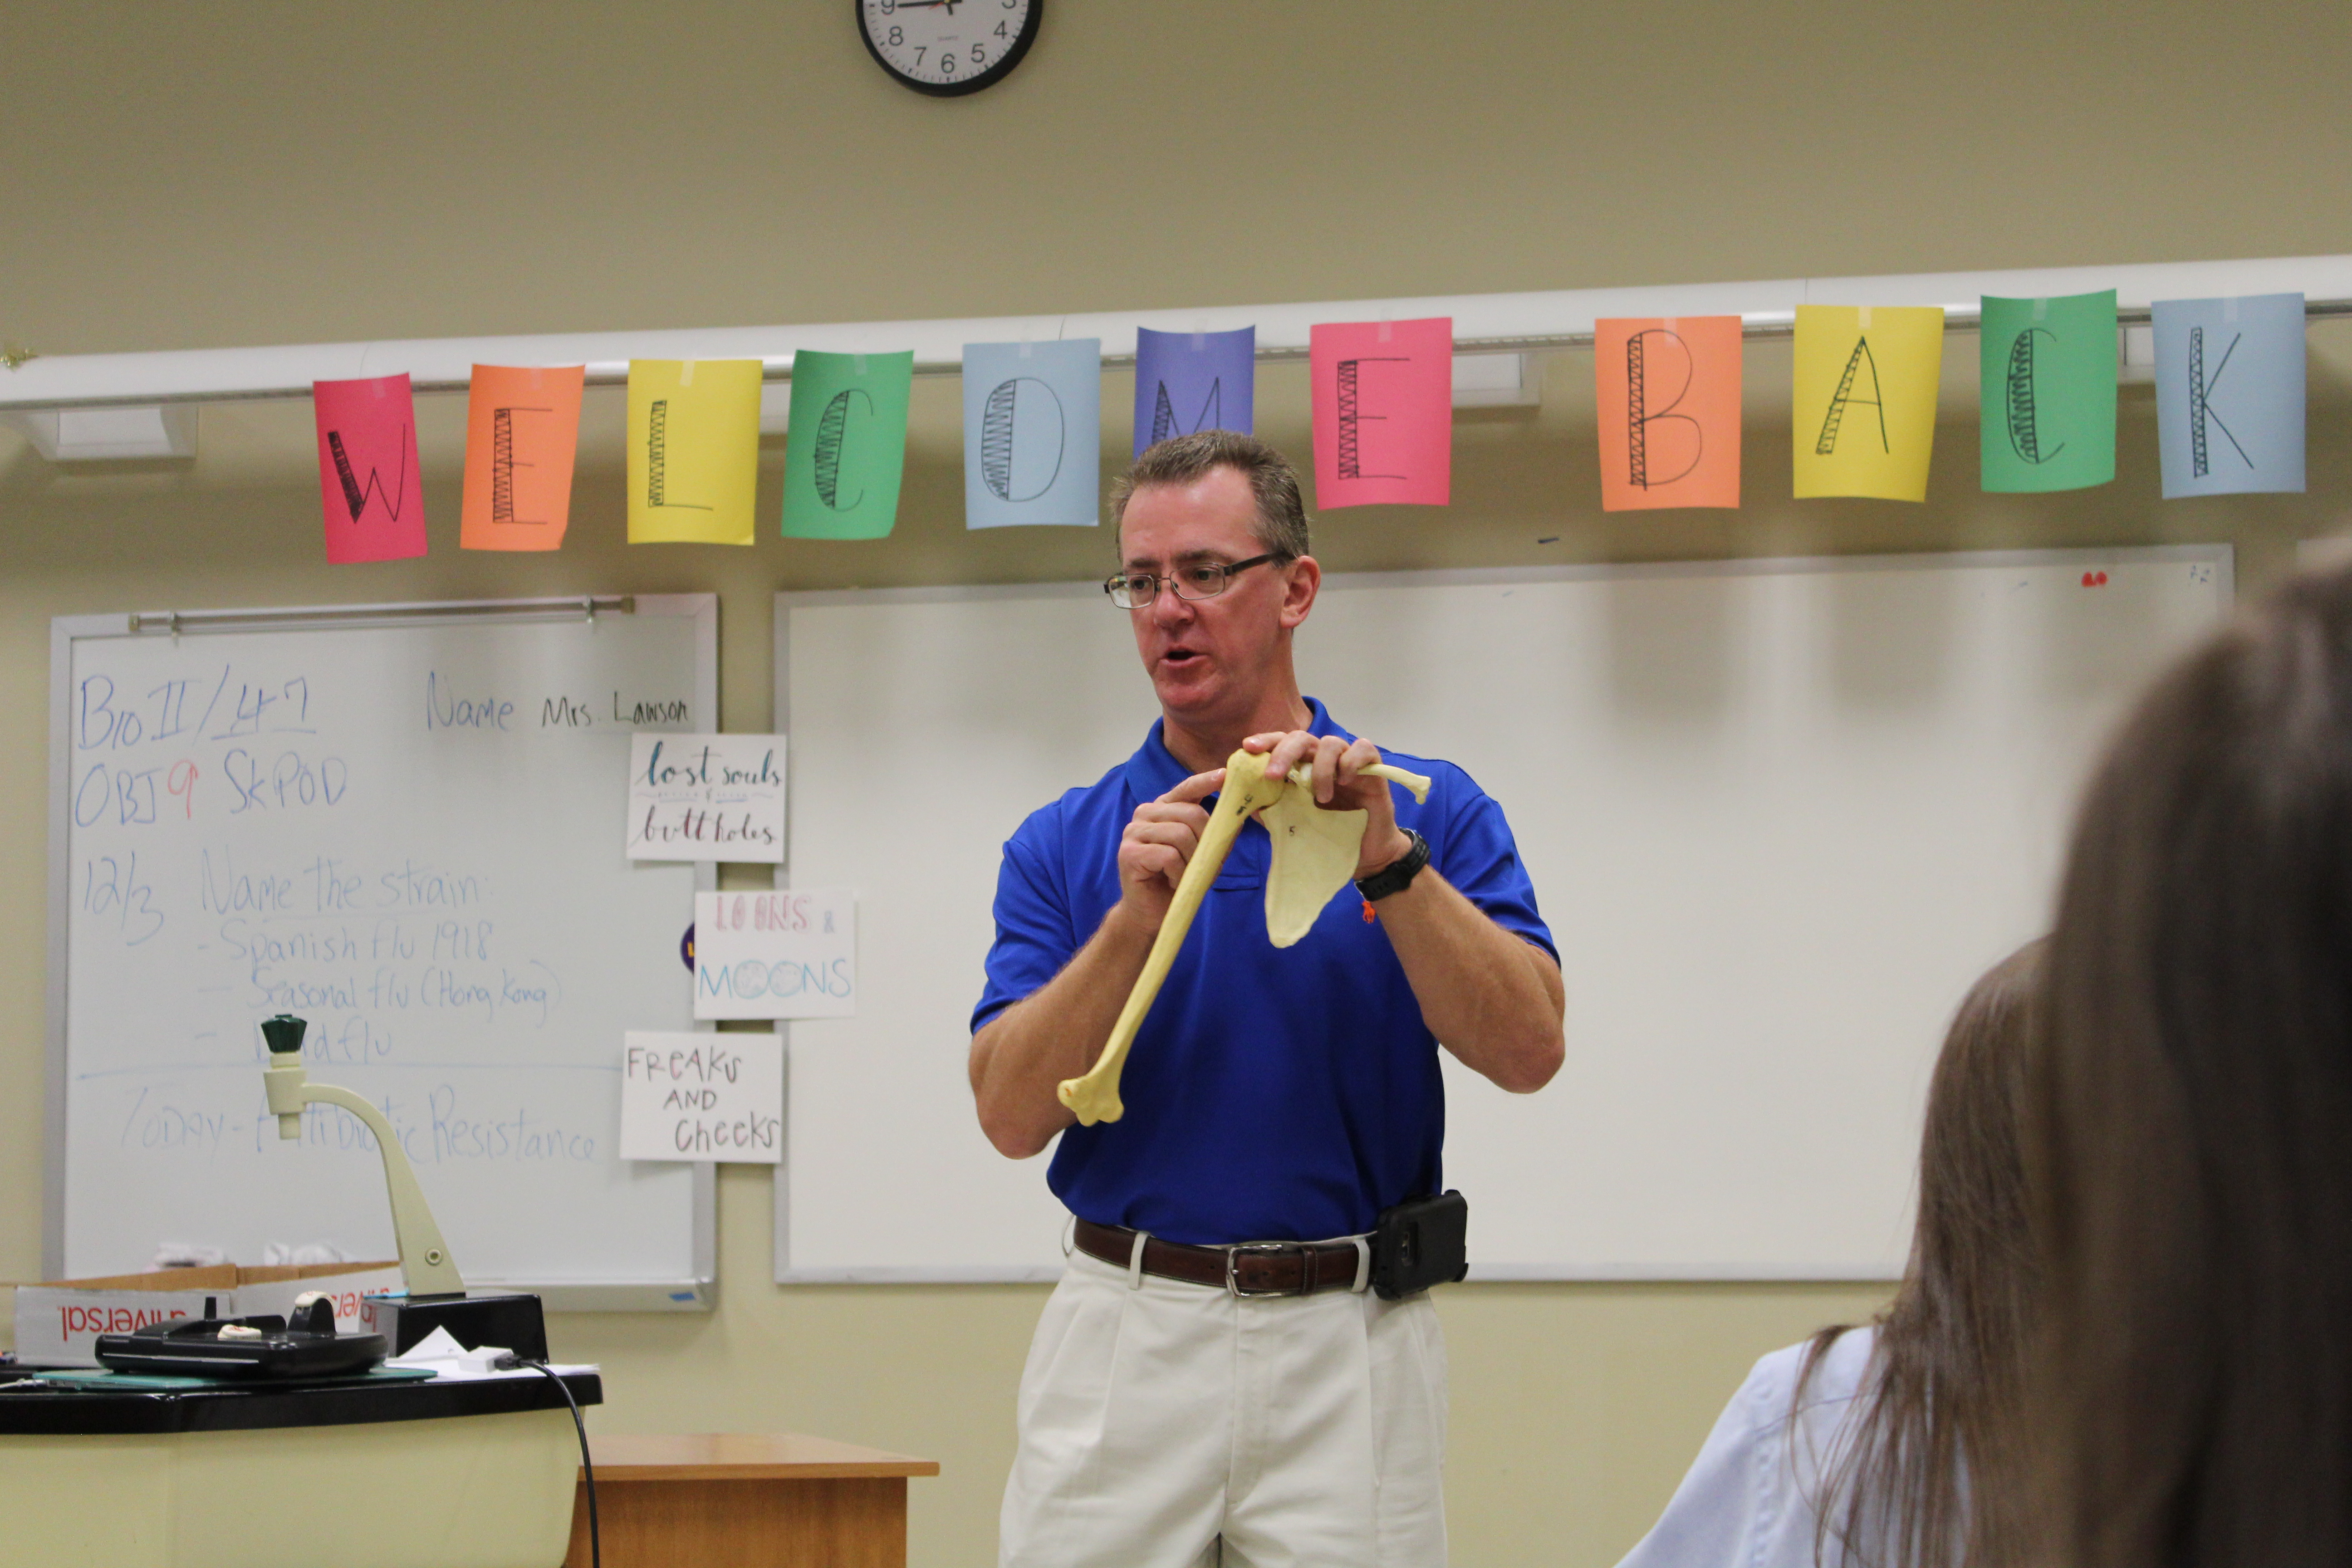 Dr. James Thriffiley speaks to Anatomy & Physiology students